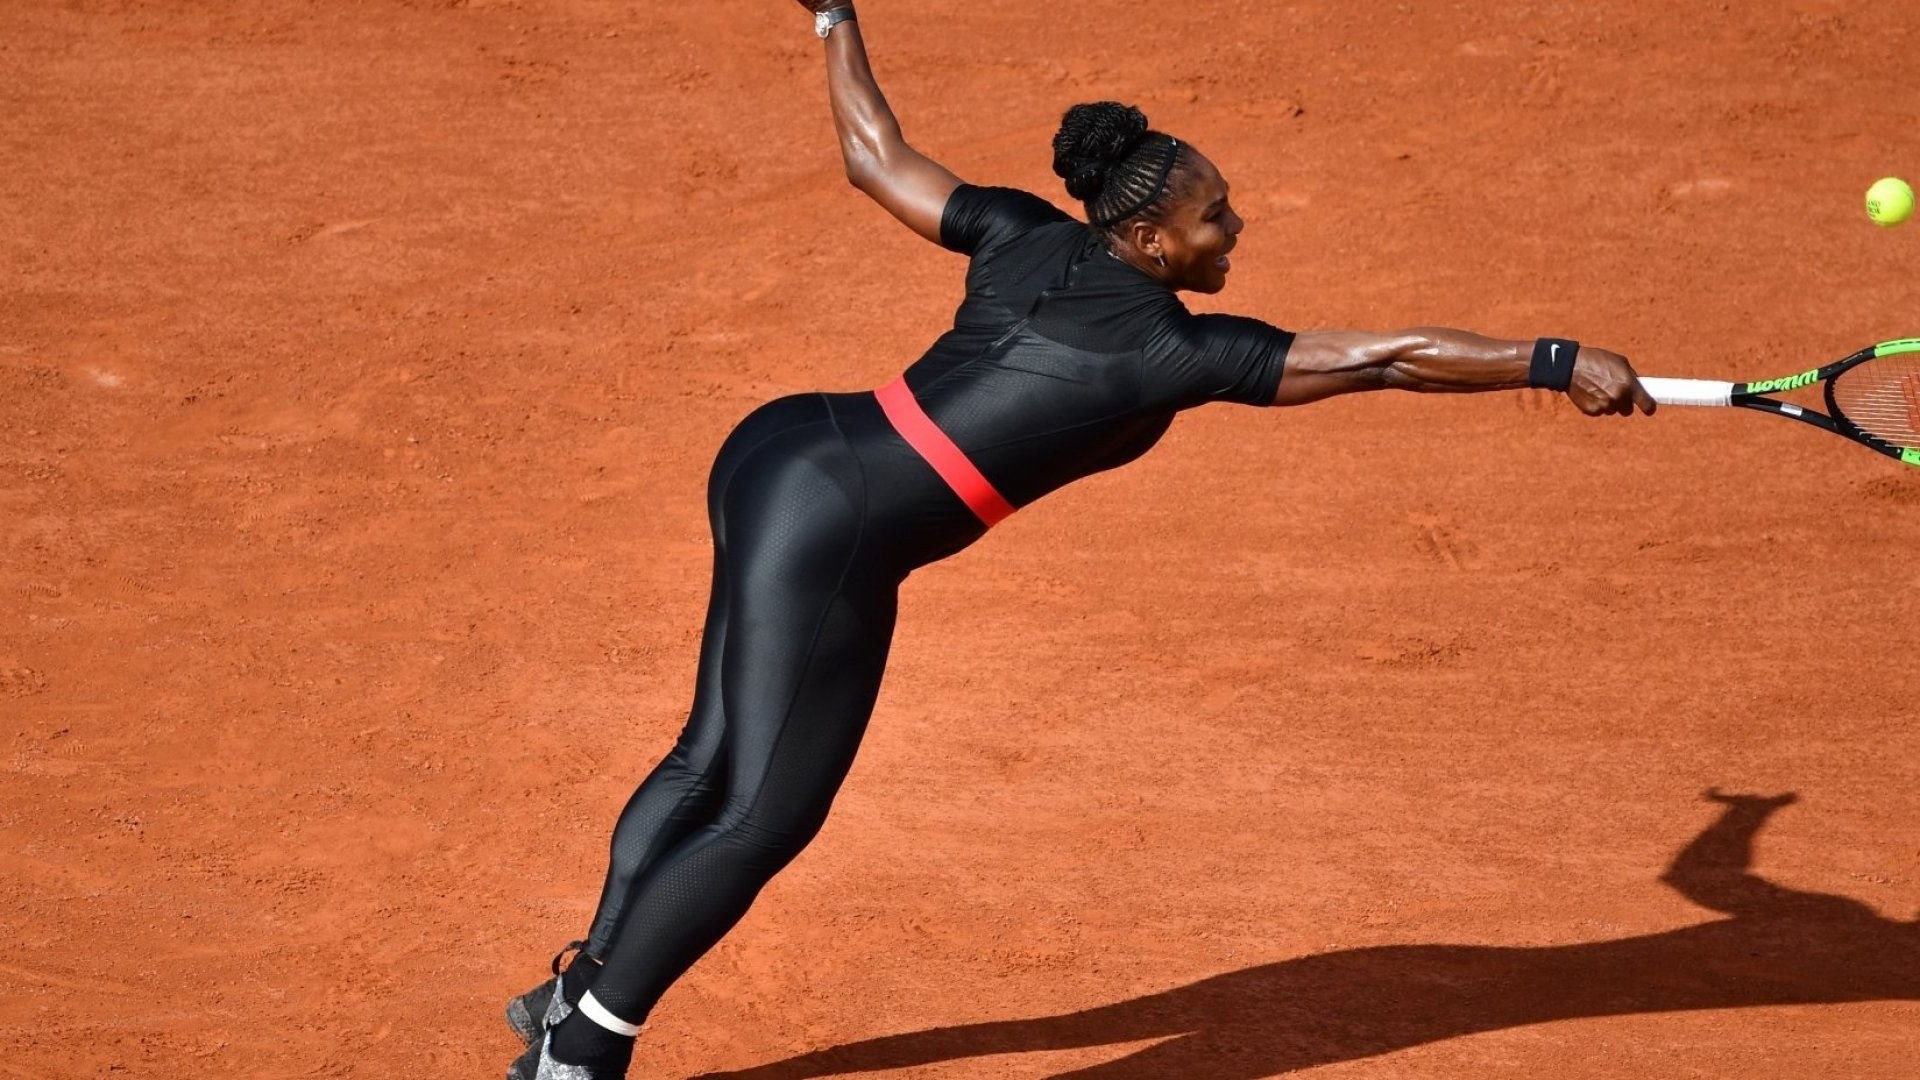 Serena Williams's Catsuit Should Make You Revisit Your Dress Code (Not For the Reason You Think)